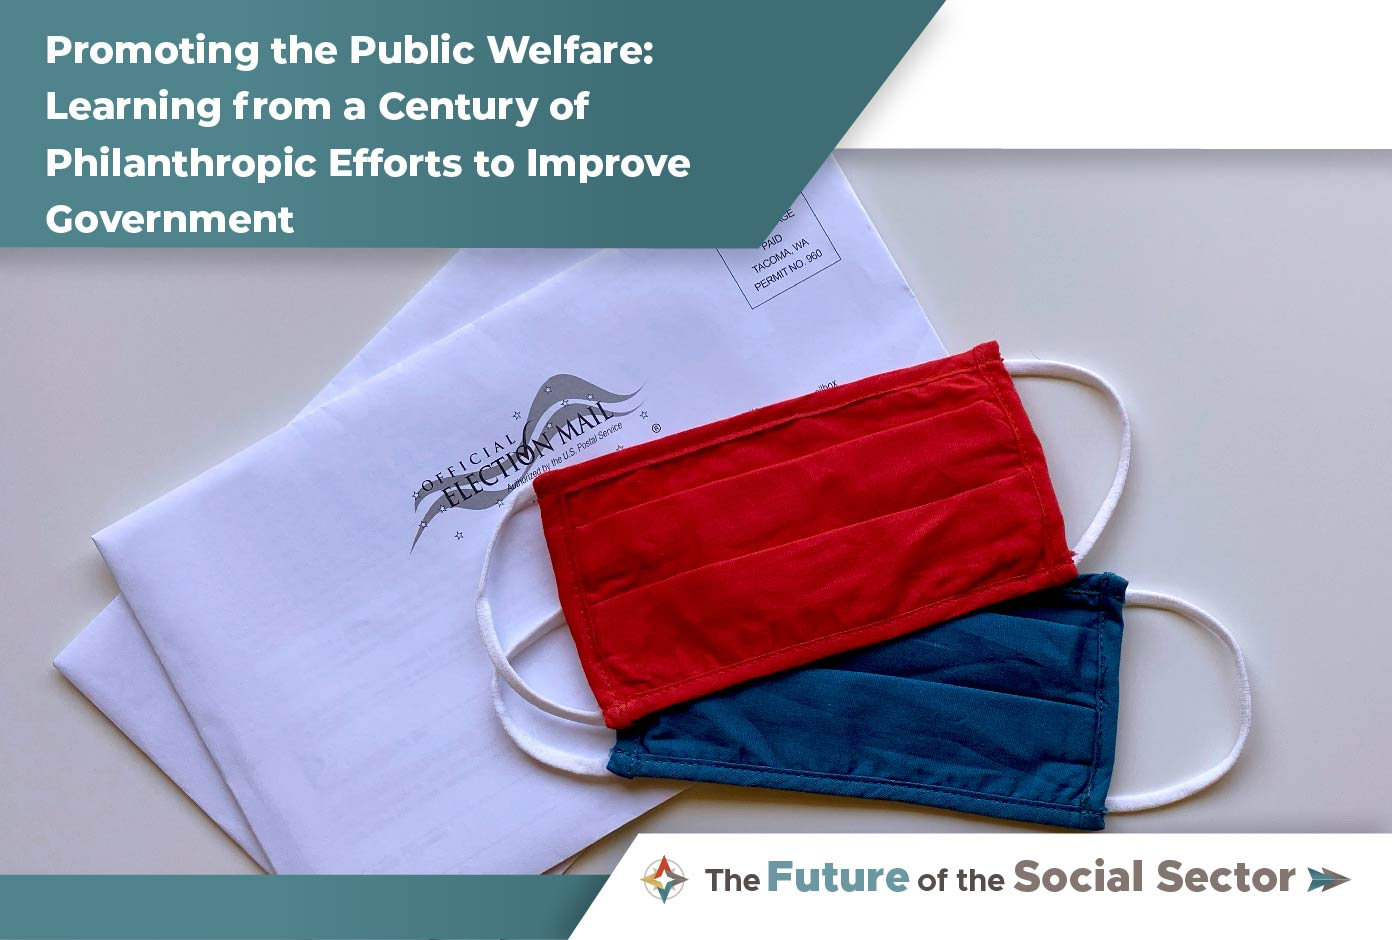 Promoting the Public Welfare: Learning from a Century of Philanthropic Efforts to Improve Government